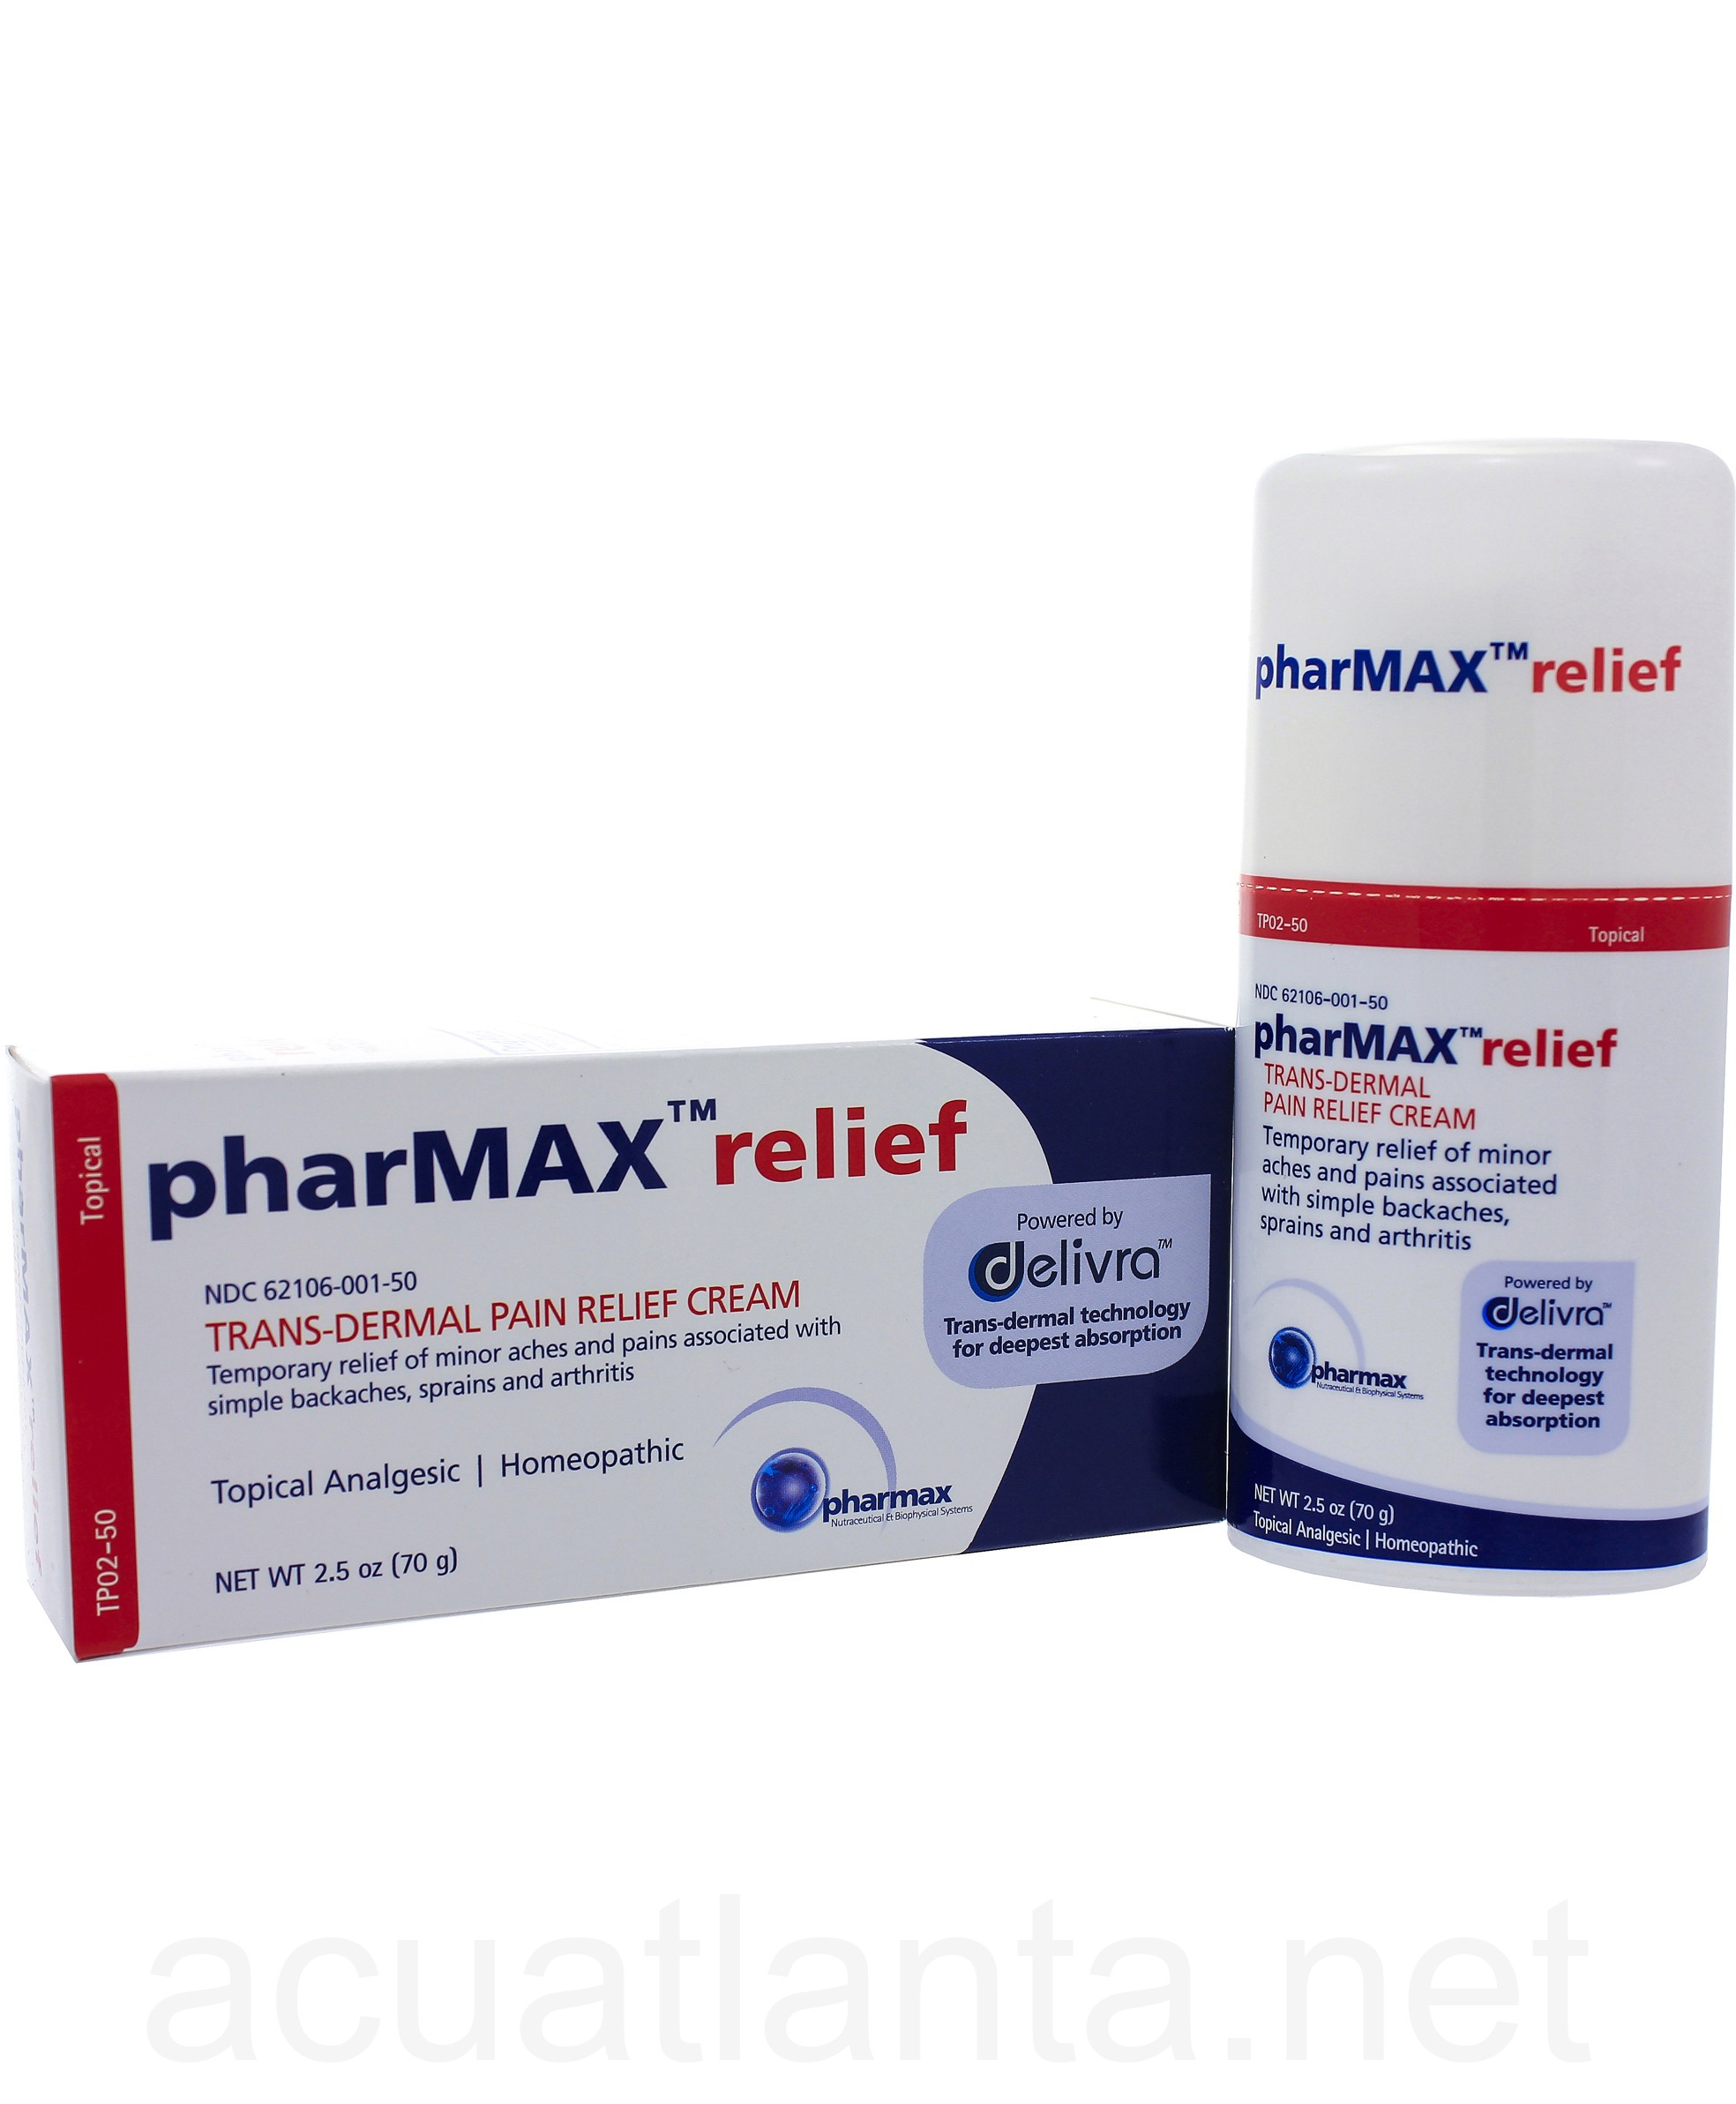 Anesthetic relief cream pharmax relief topical analgesic for Topical analgesic for tattoos